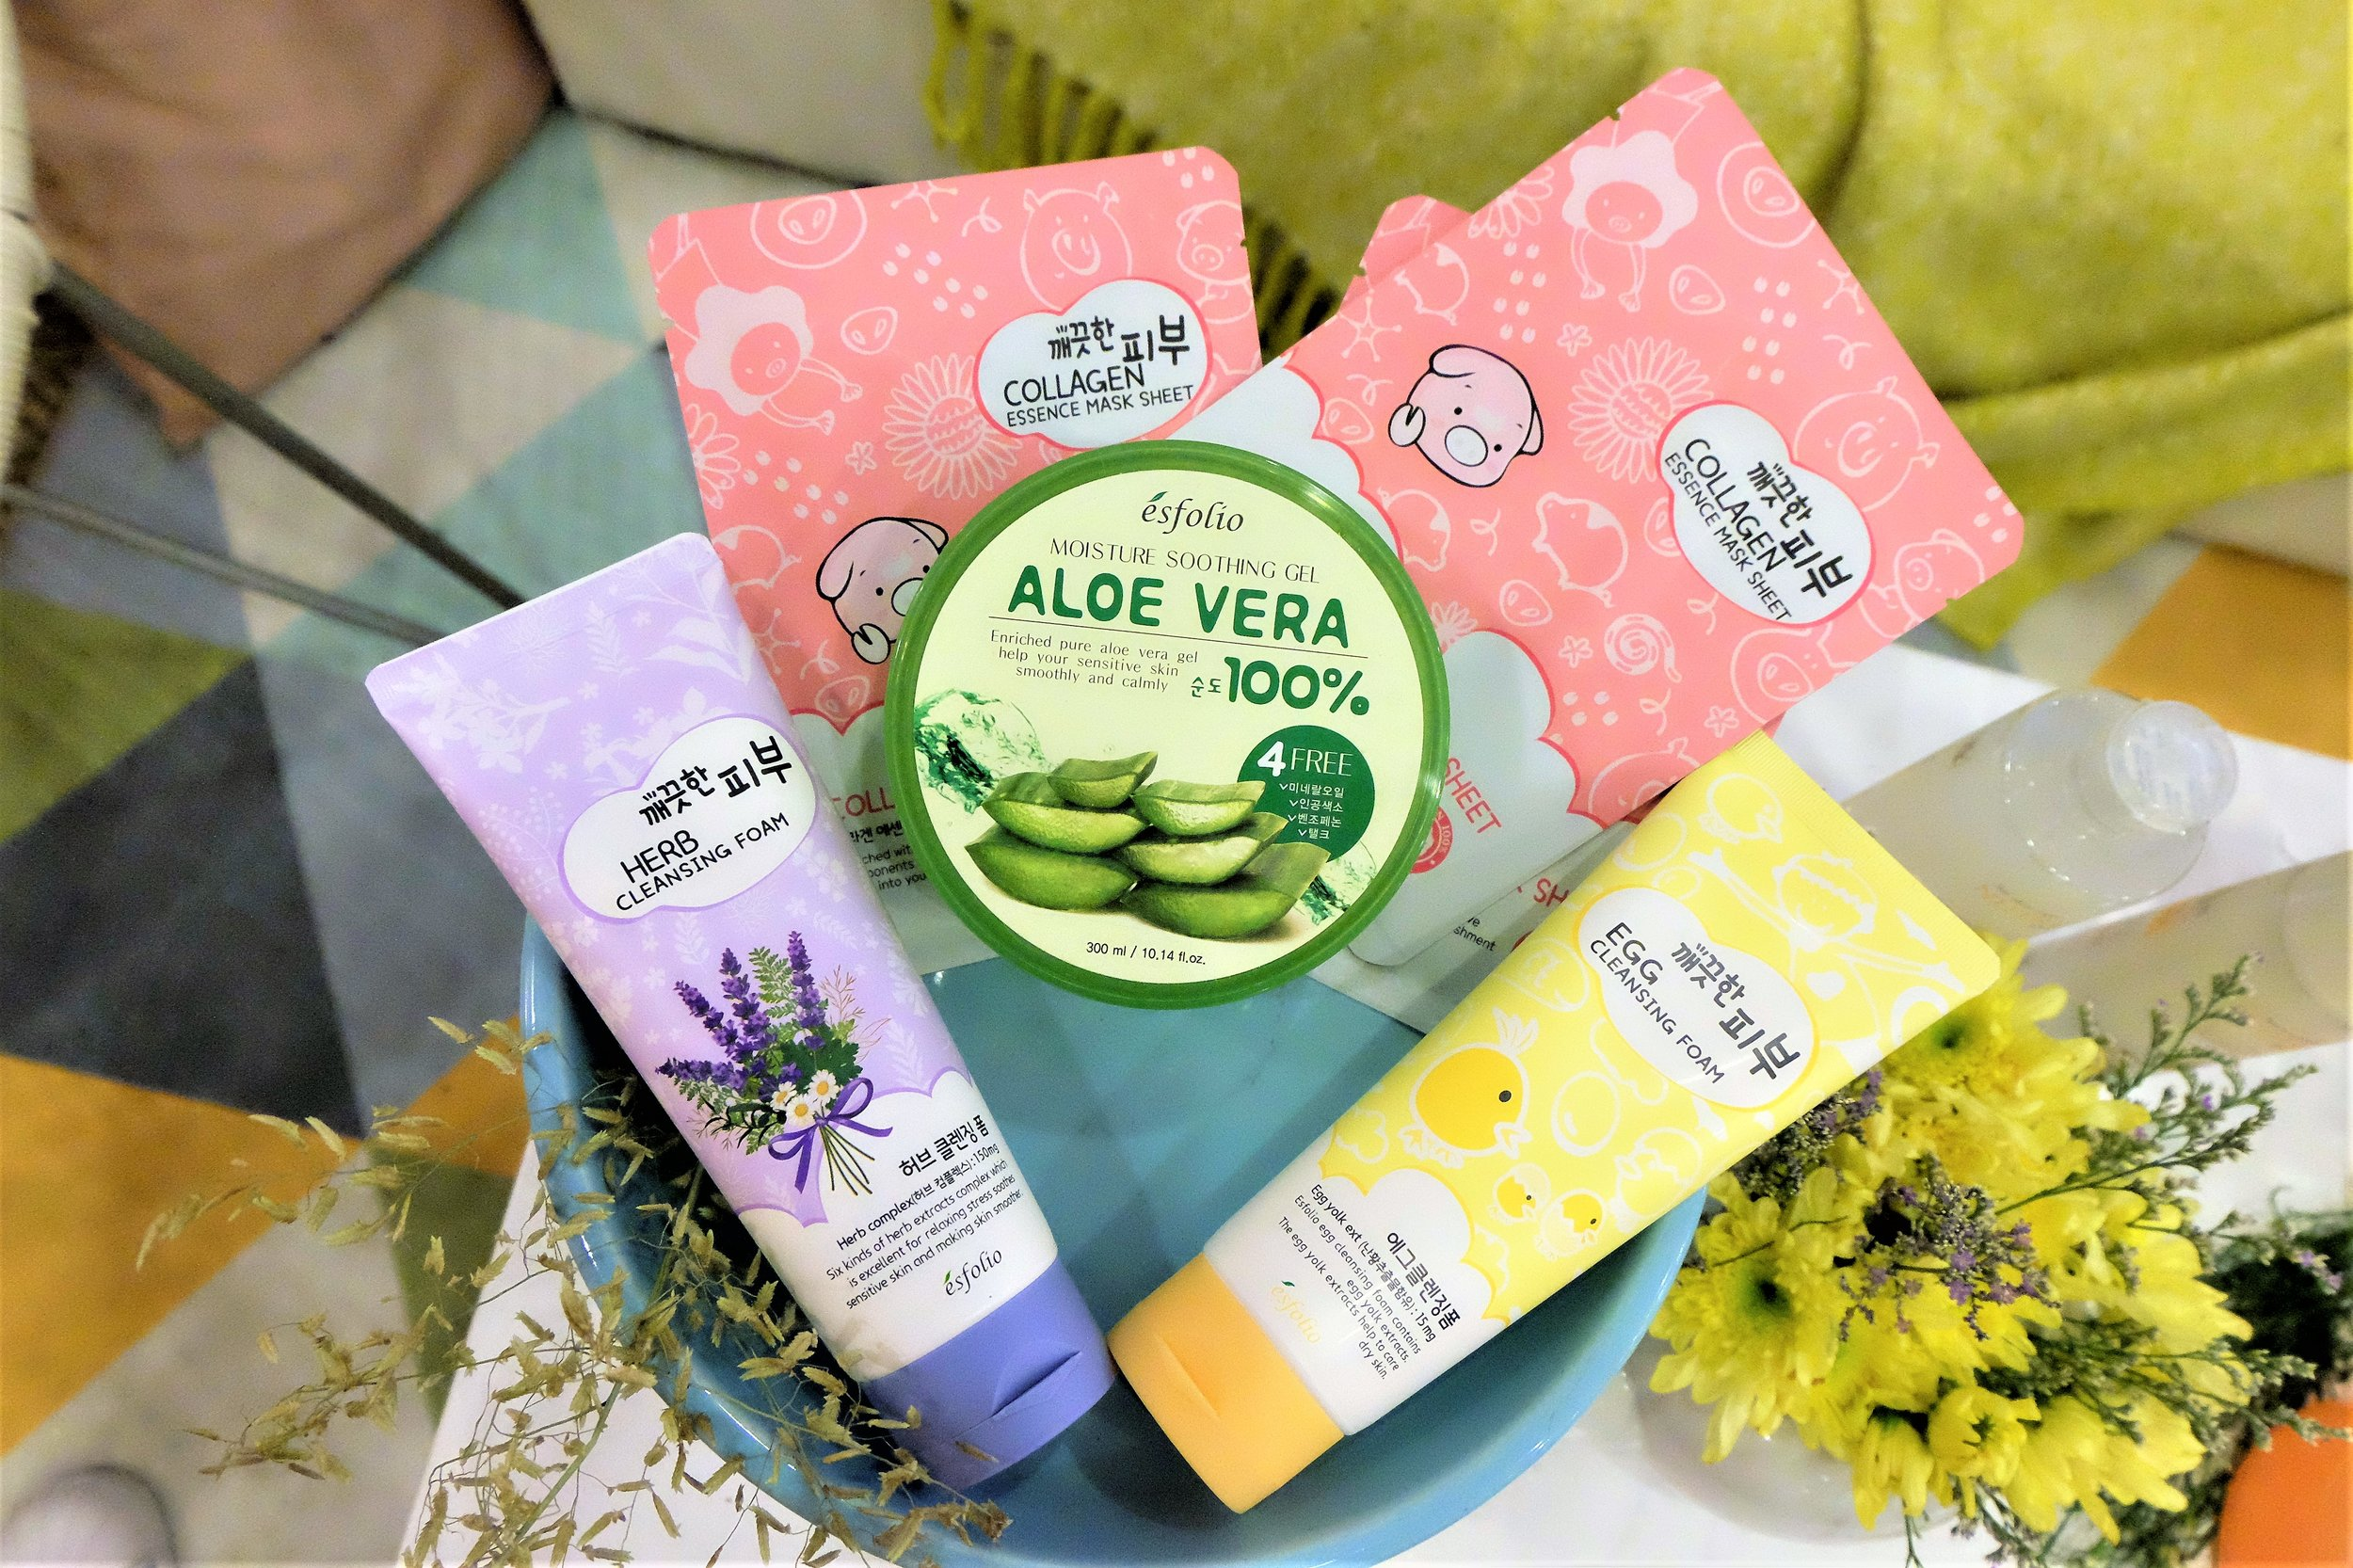 Collagen Essence Mask, Aloe Vera Soothing Gel, Herb Cleansing Foam, and Egg Cleansing Foam